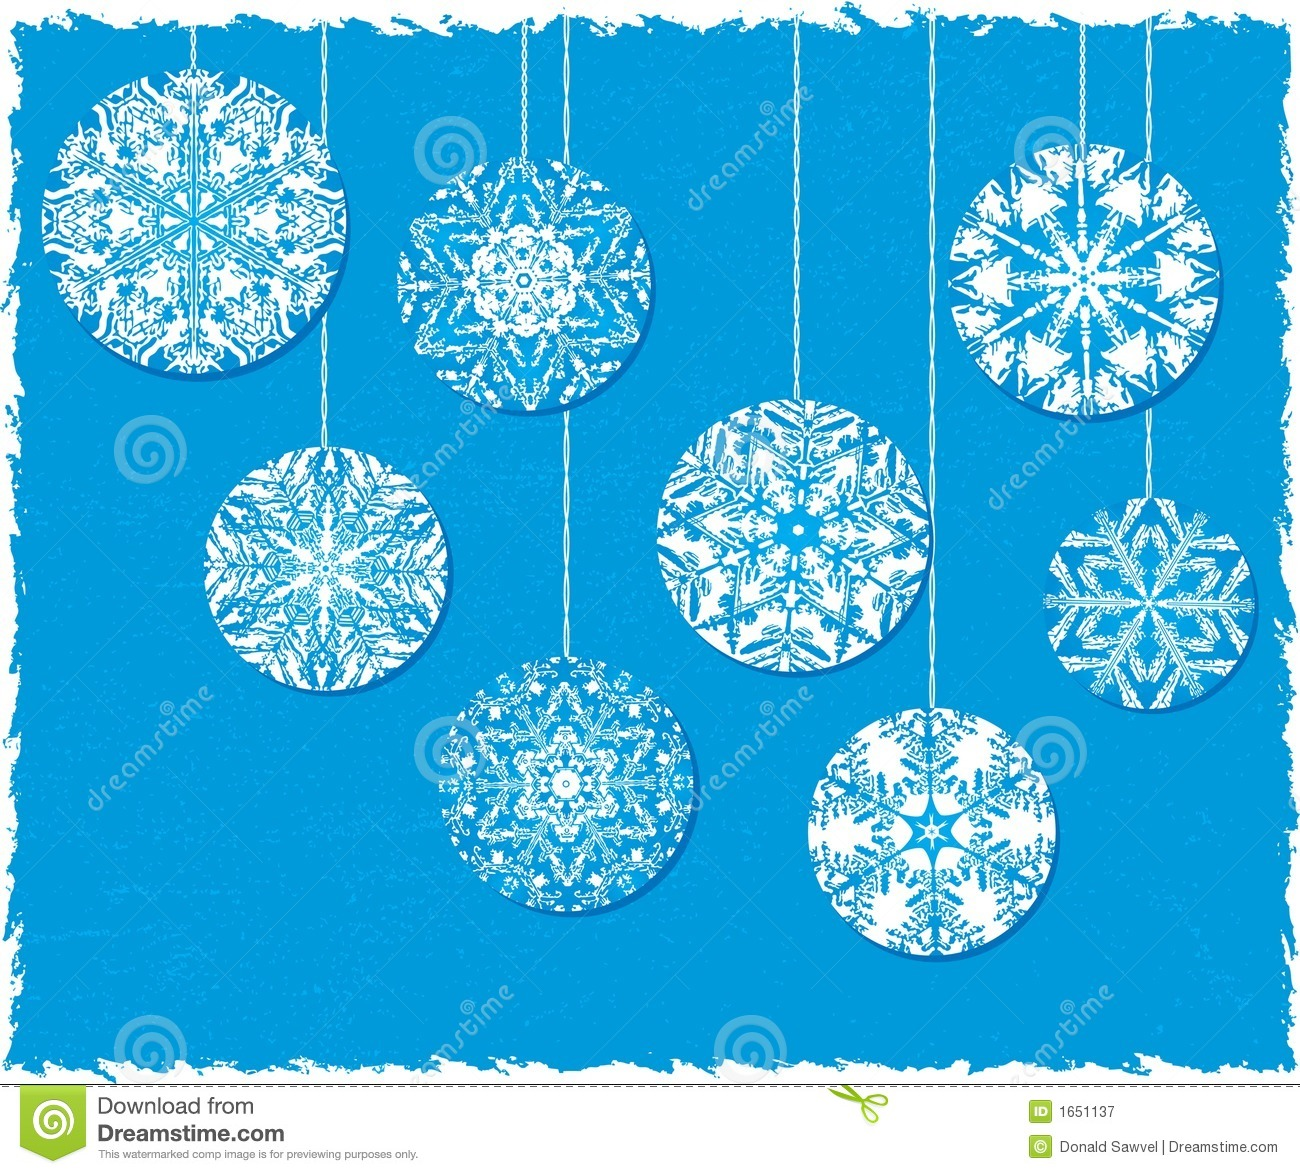 Christmas snowflake ornaments - Snowflake Christmas Ornaments On A Blue Background Royalty Free Stock Photography